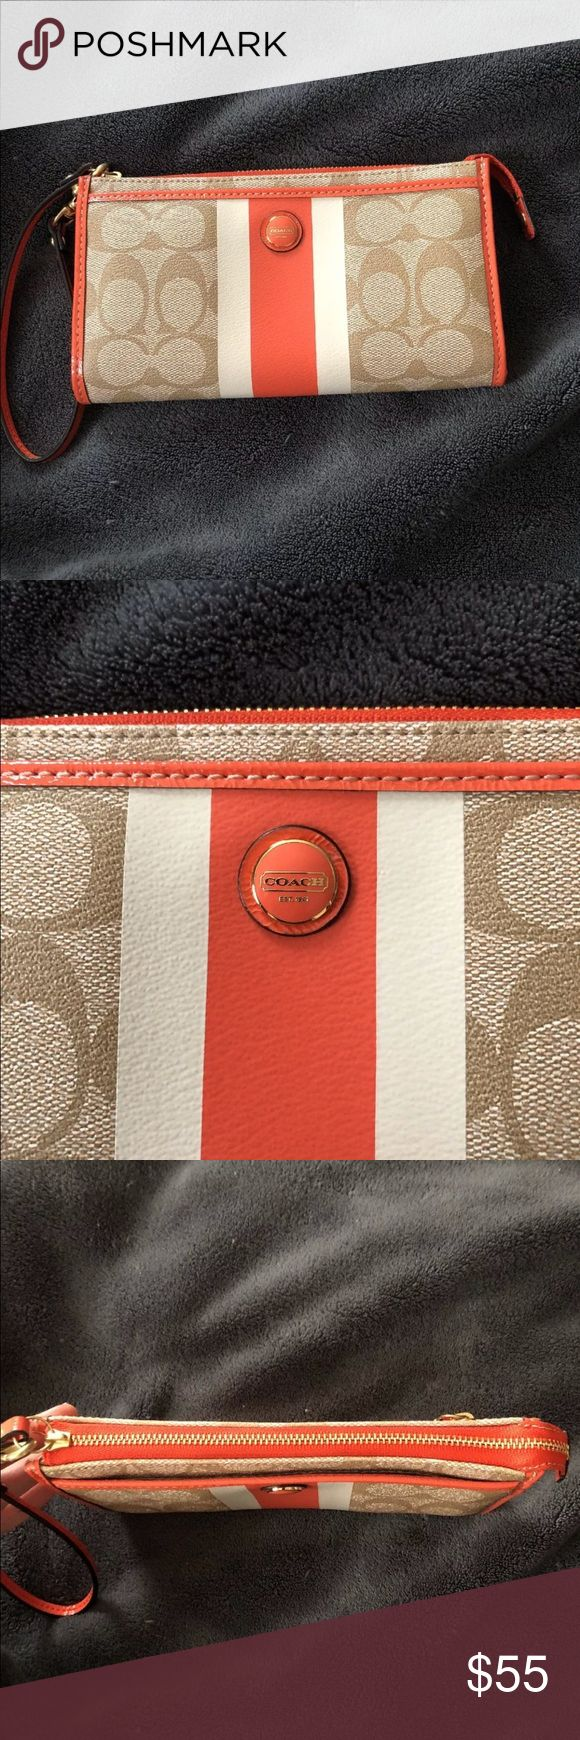 Authentic coach wristlet wallet Excellent condition! Used a few times after tags came off. No marks or wear. Has 6 credit card slots and a few more pockets inside. Has a zipper pocket outside and a pocket on the front. Orange, tan, and cream. Pet friendly smoke free home. Coach Bags Wallets